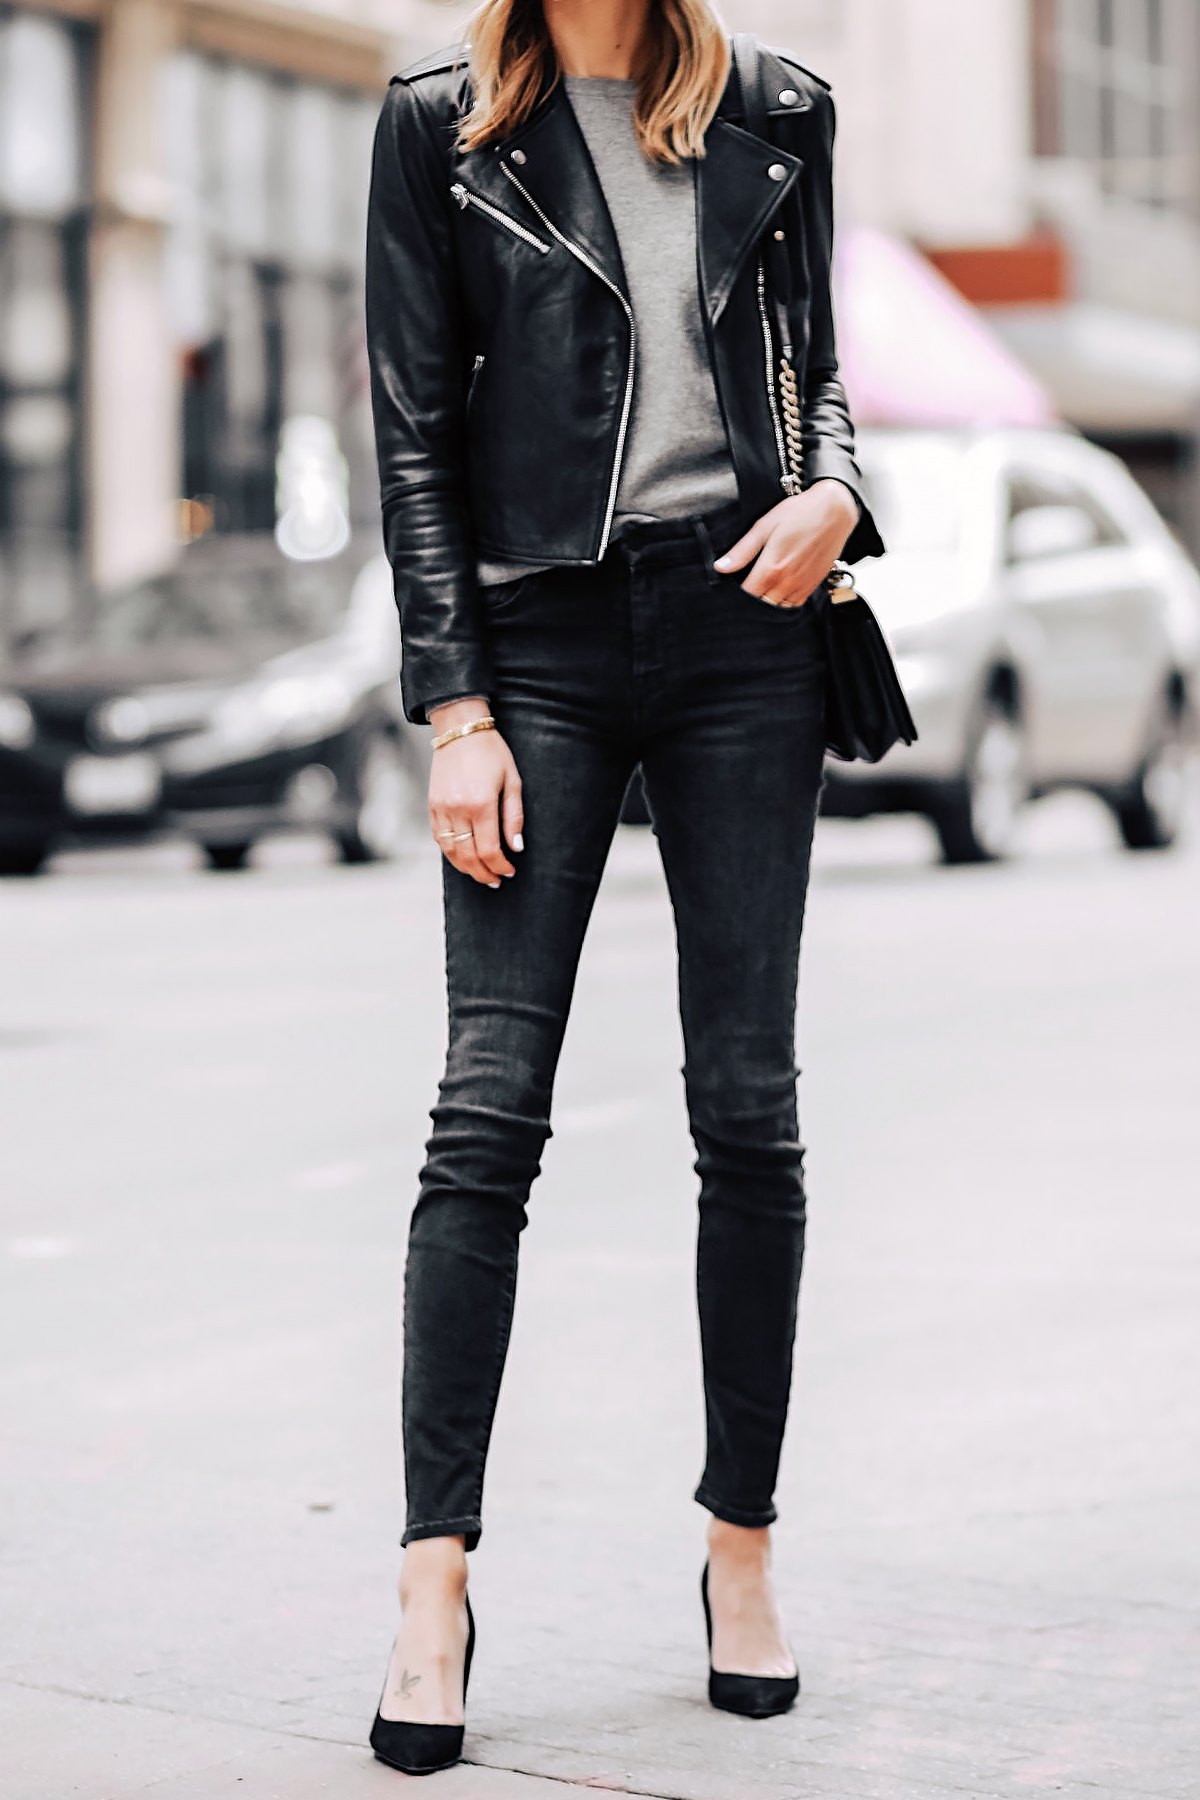 Blonde Woman Wearing Club Monaco Black Leather Jacket Grey Sweater Black Skinny Jeans Black Pumps Fashion Jackson San Diego Fashion Blogger Street Style